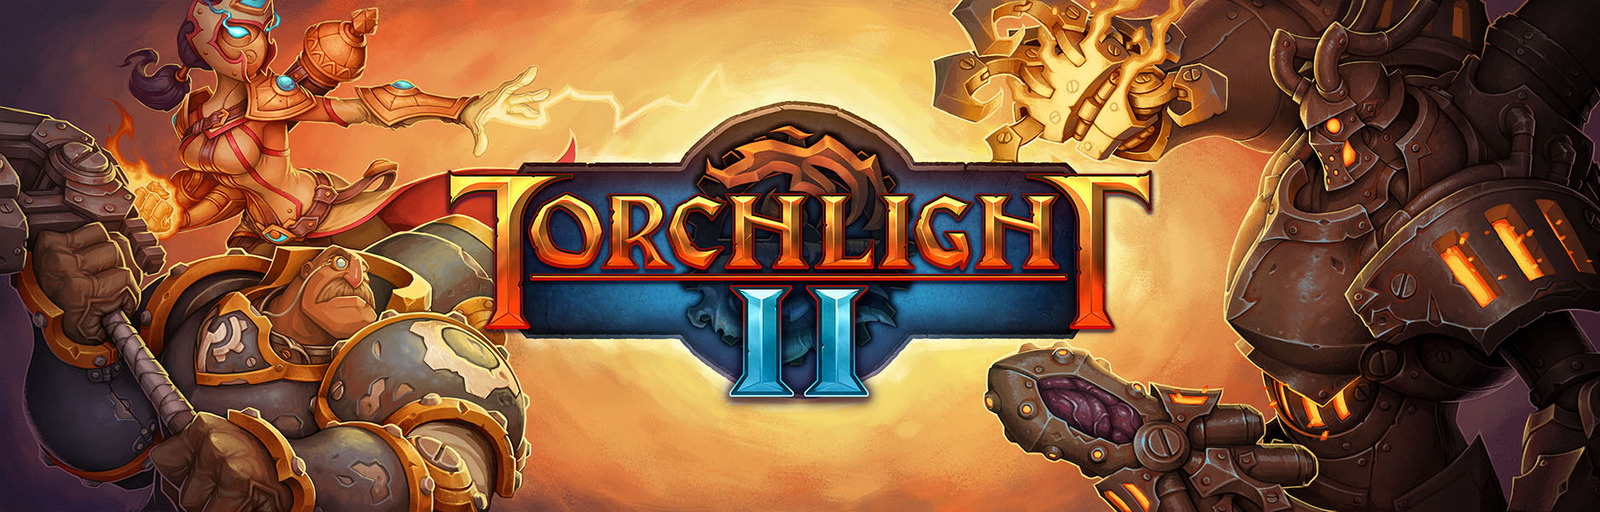 Torchlight II Christmas Giveaway Gt GamersBook